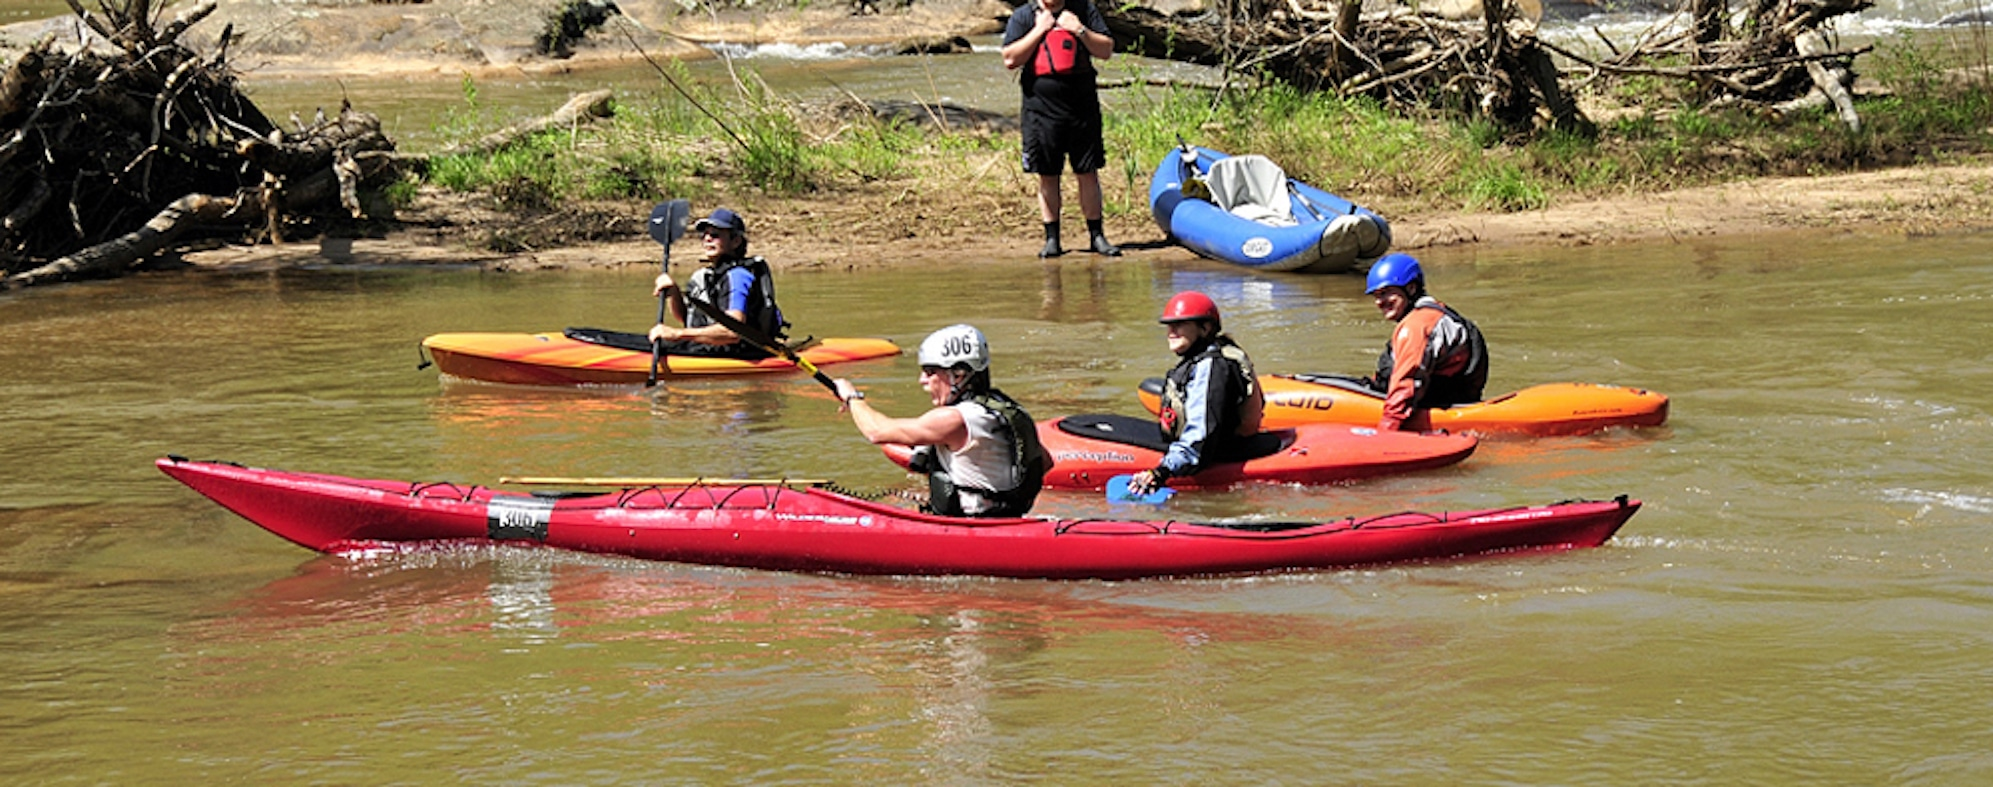 Discover Spartanburg County's Water Fun at April Event